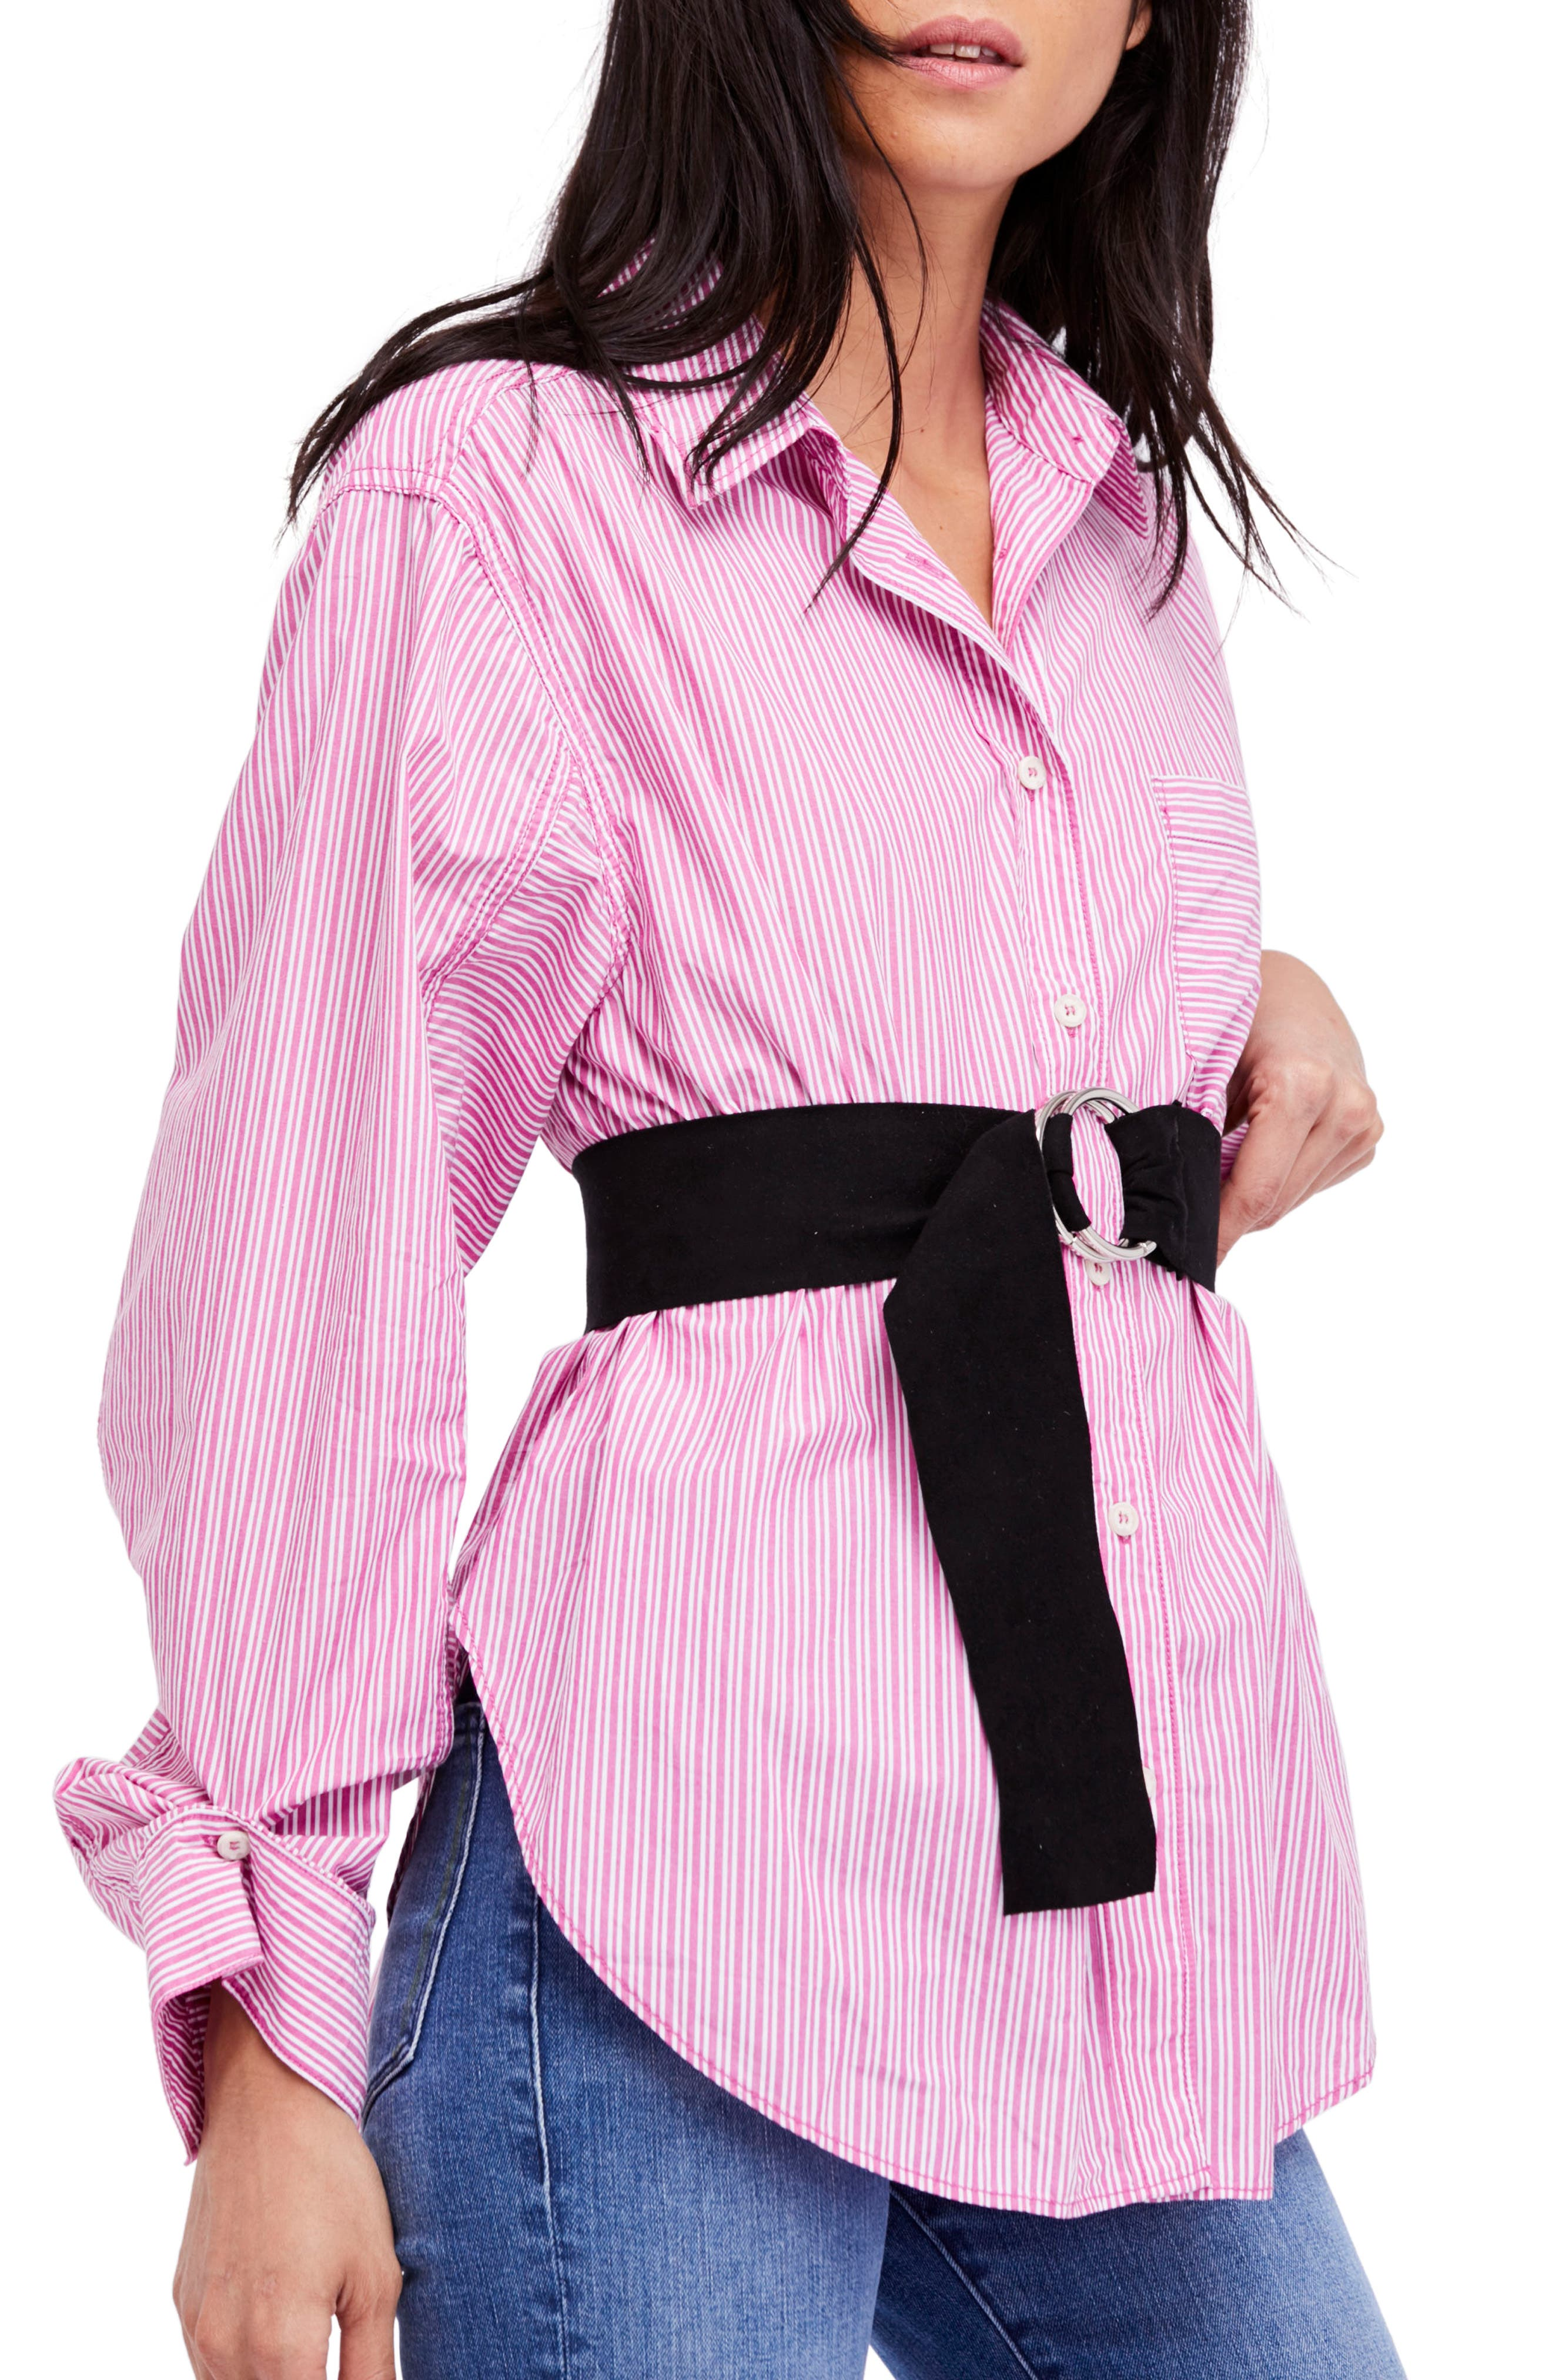 Tie It in a Bow Shirt,                         Main,                         color, Violet